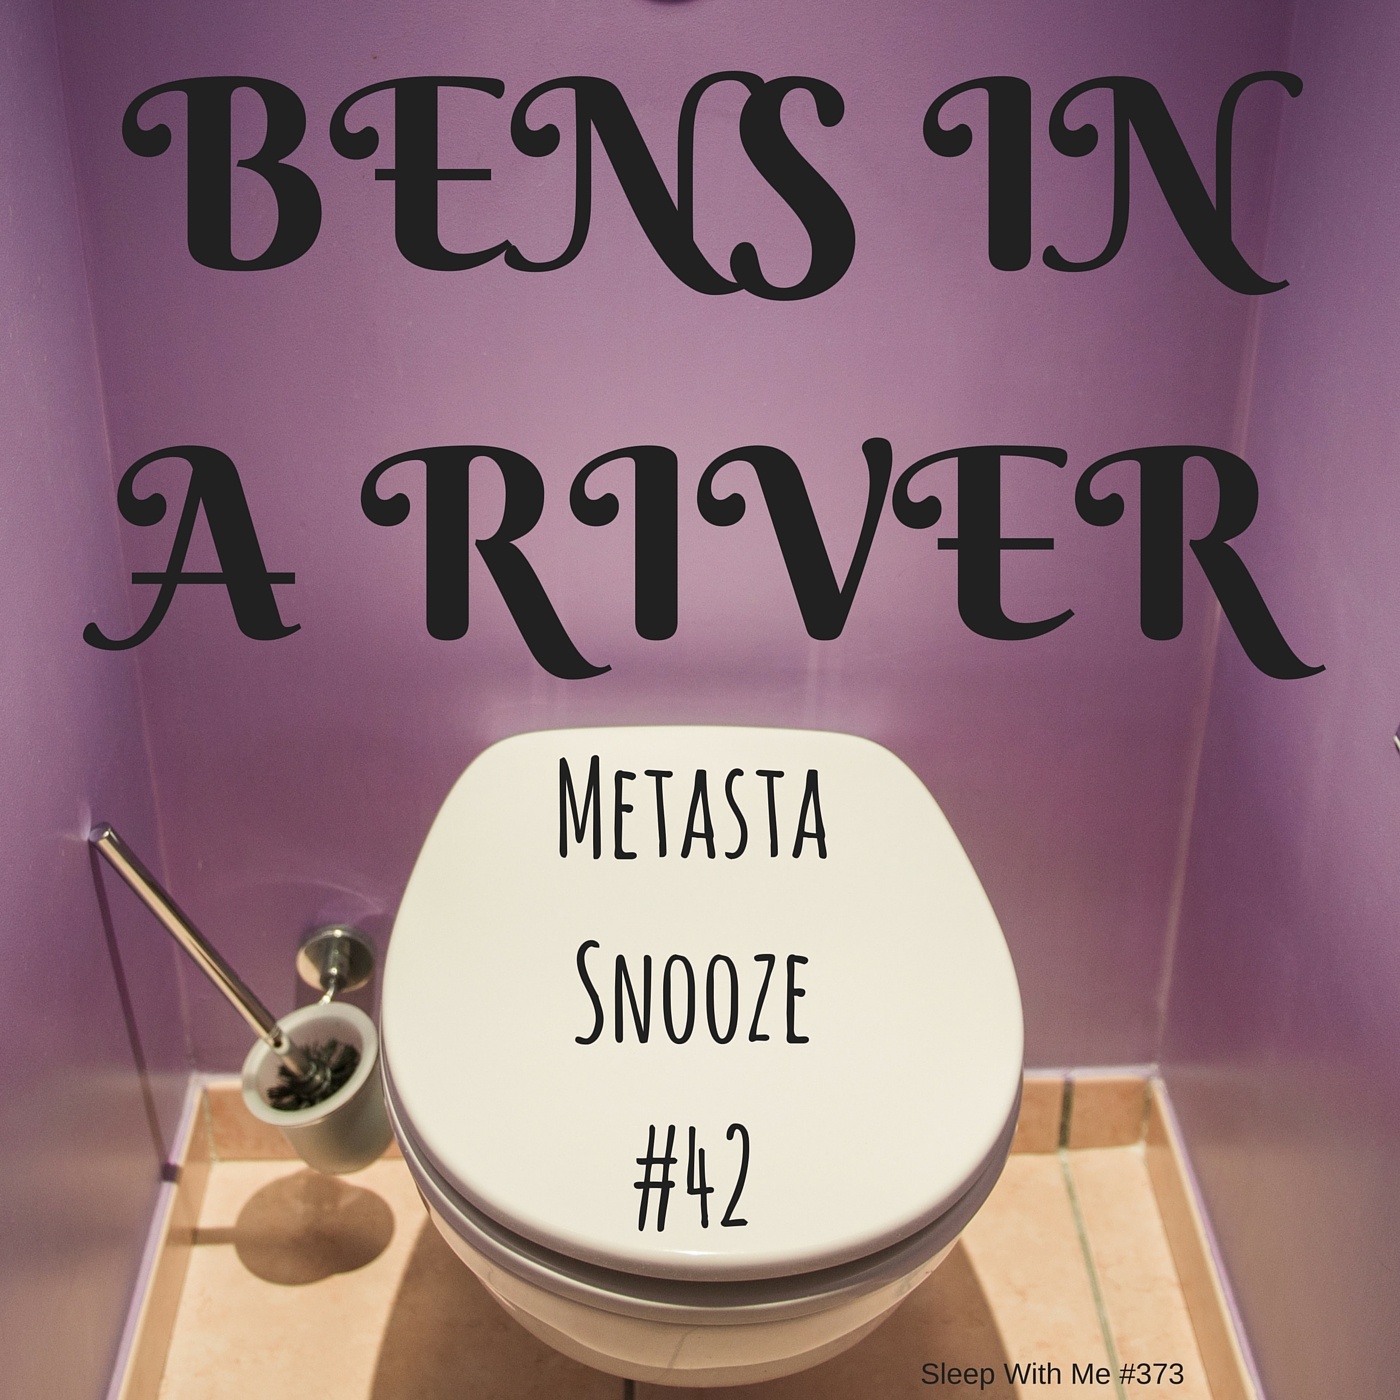 Bens in a River | Metastasnooze #42 | Sleep With Me #373